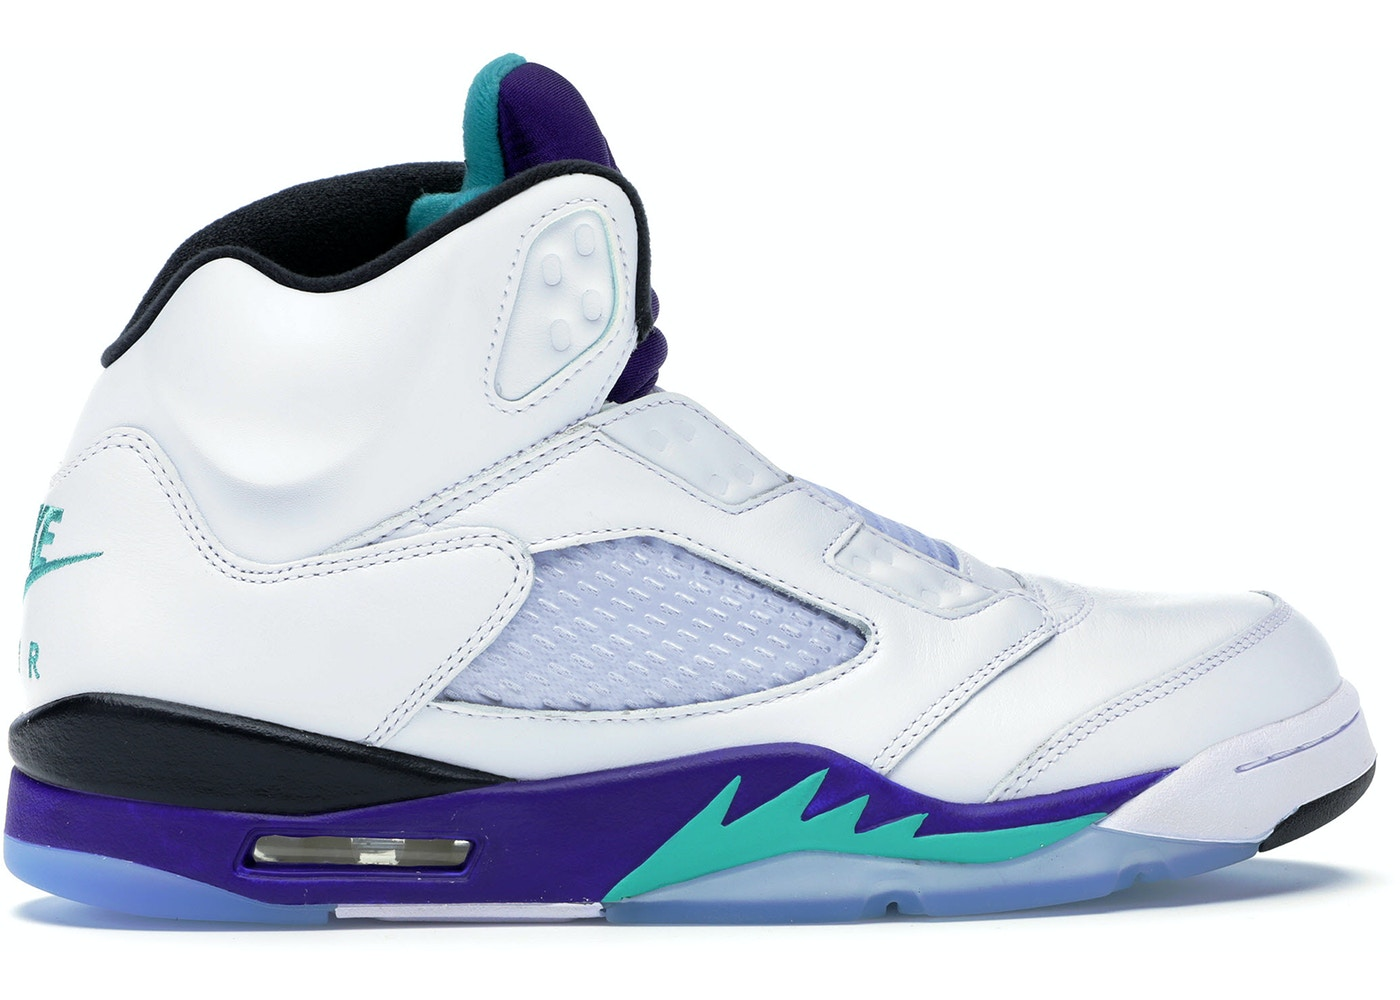 new concept 3df61 1af8e Jordan 5 Retro Grape Fresh Prince